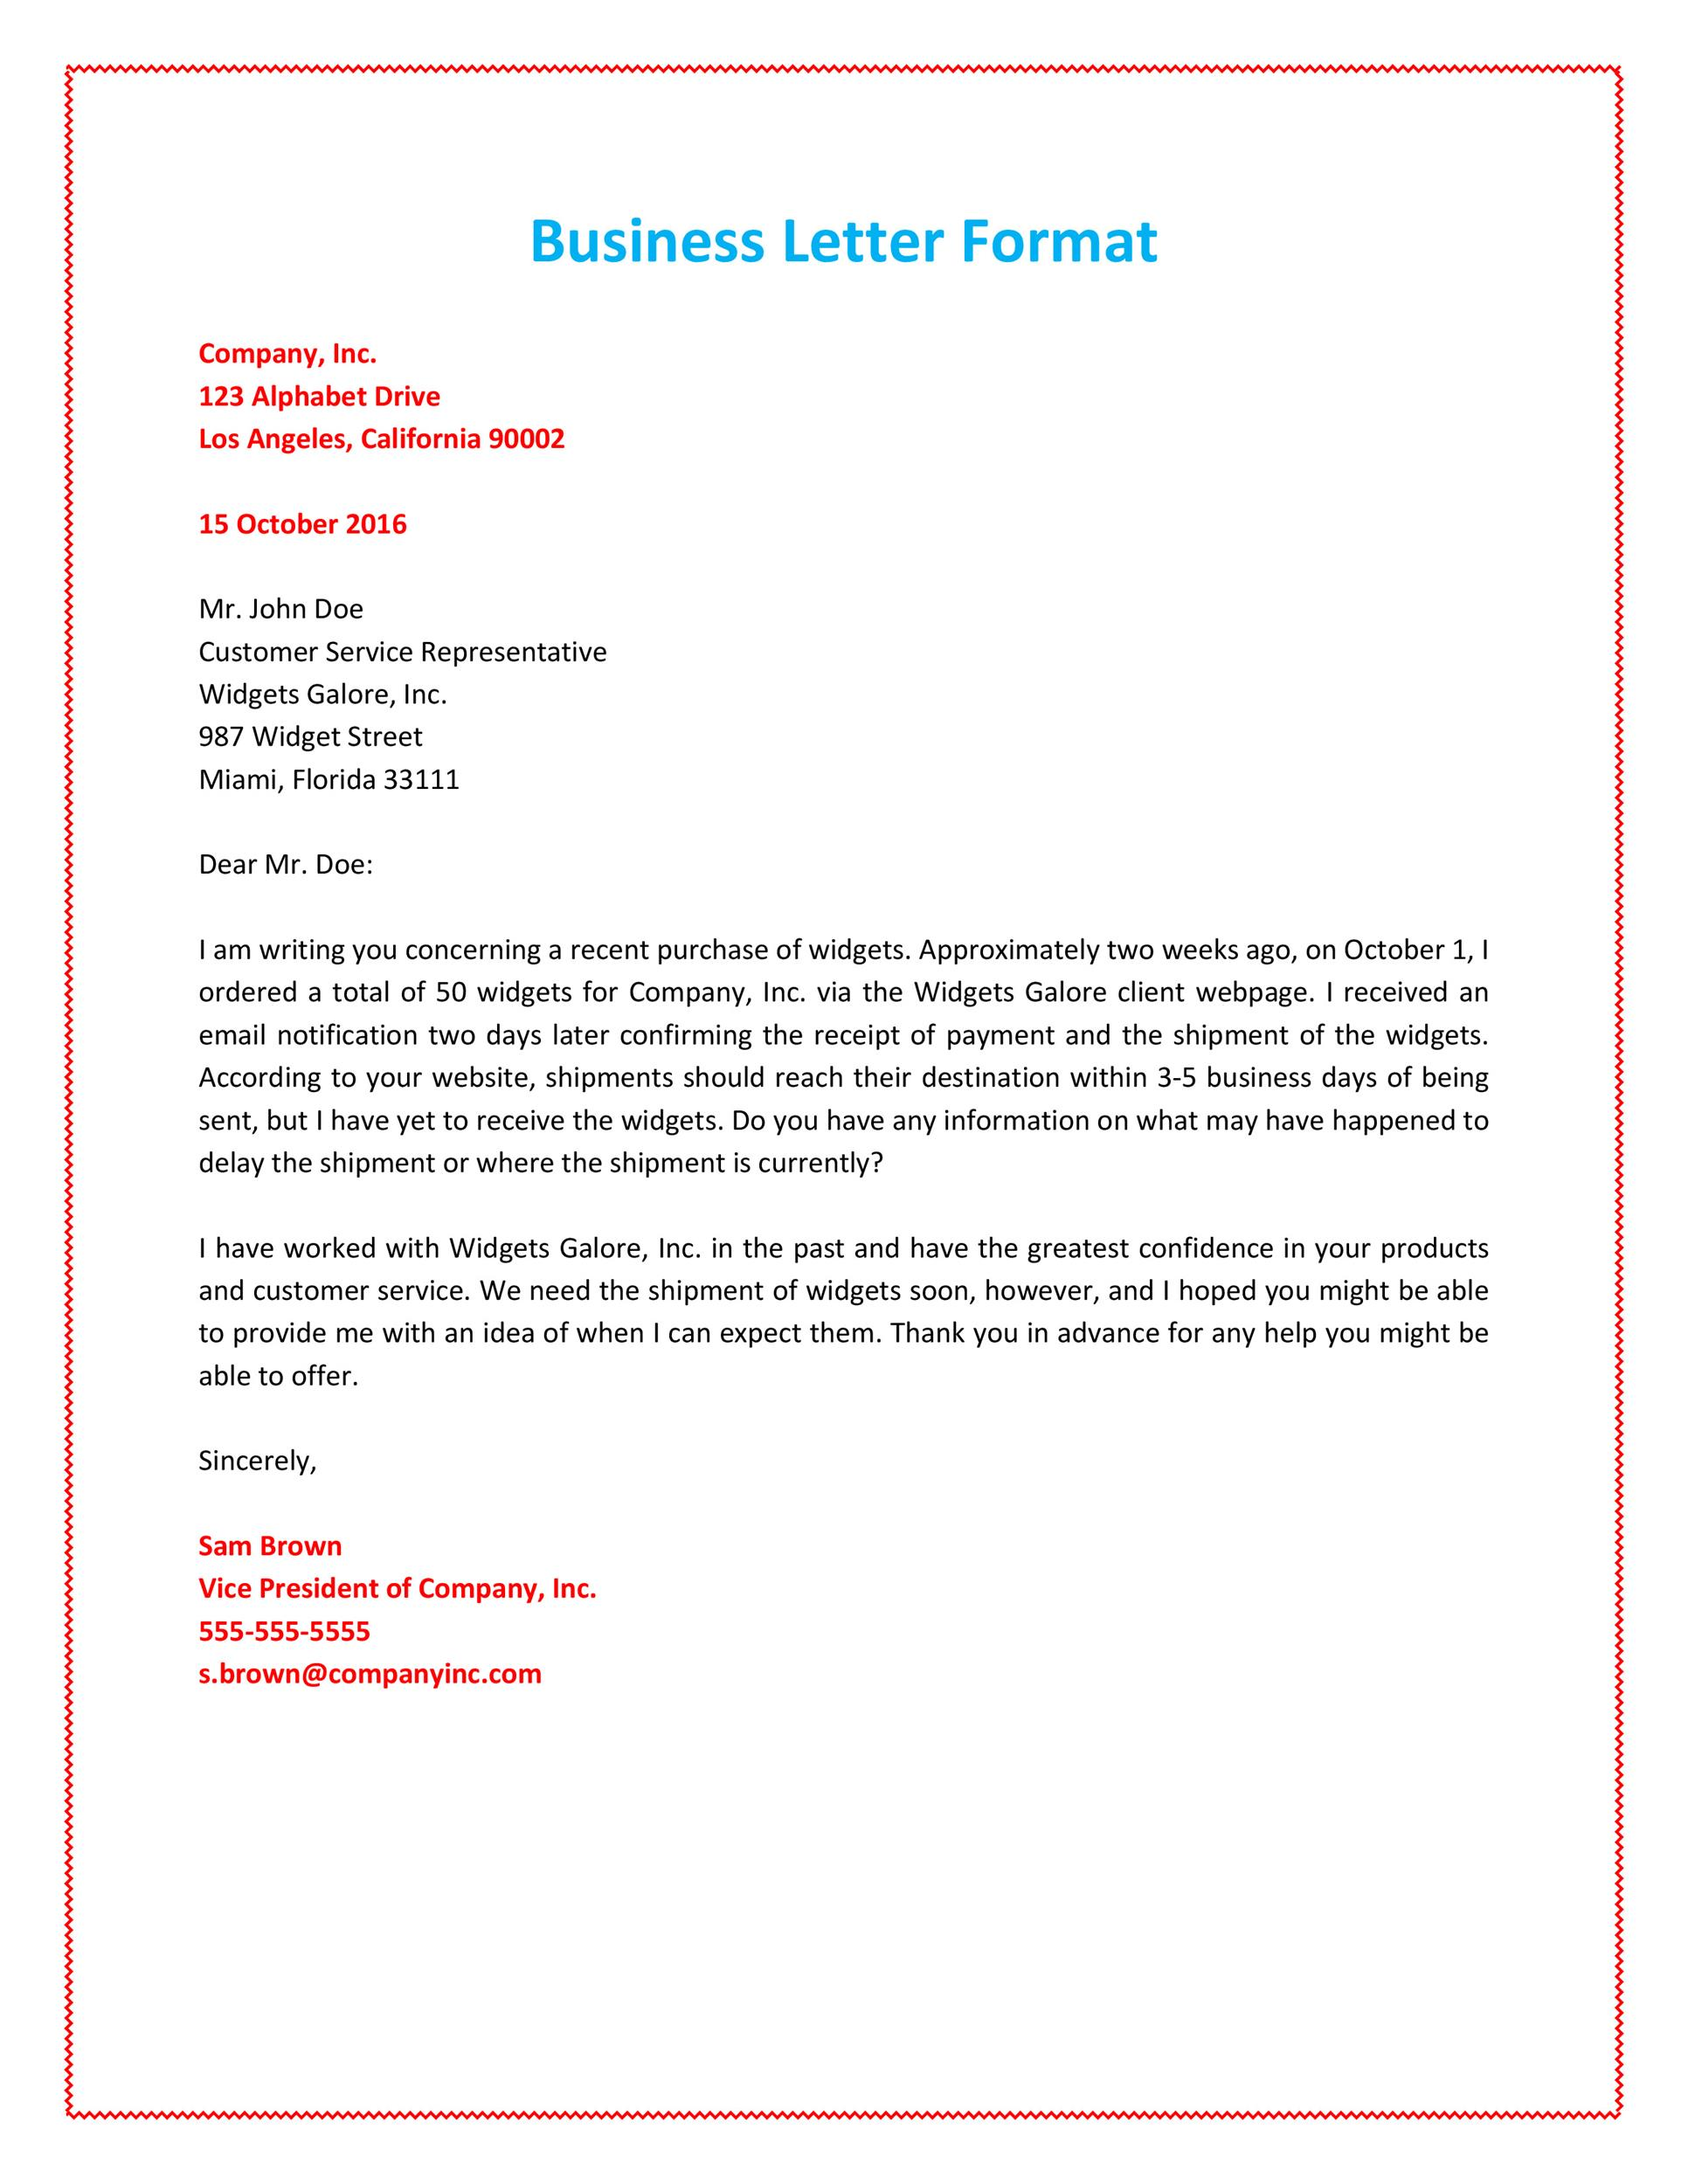 Formal business letter format example geccetackletarts 35 formal business letter format templates examples template lab altavistaventures Images